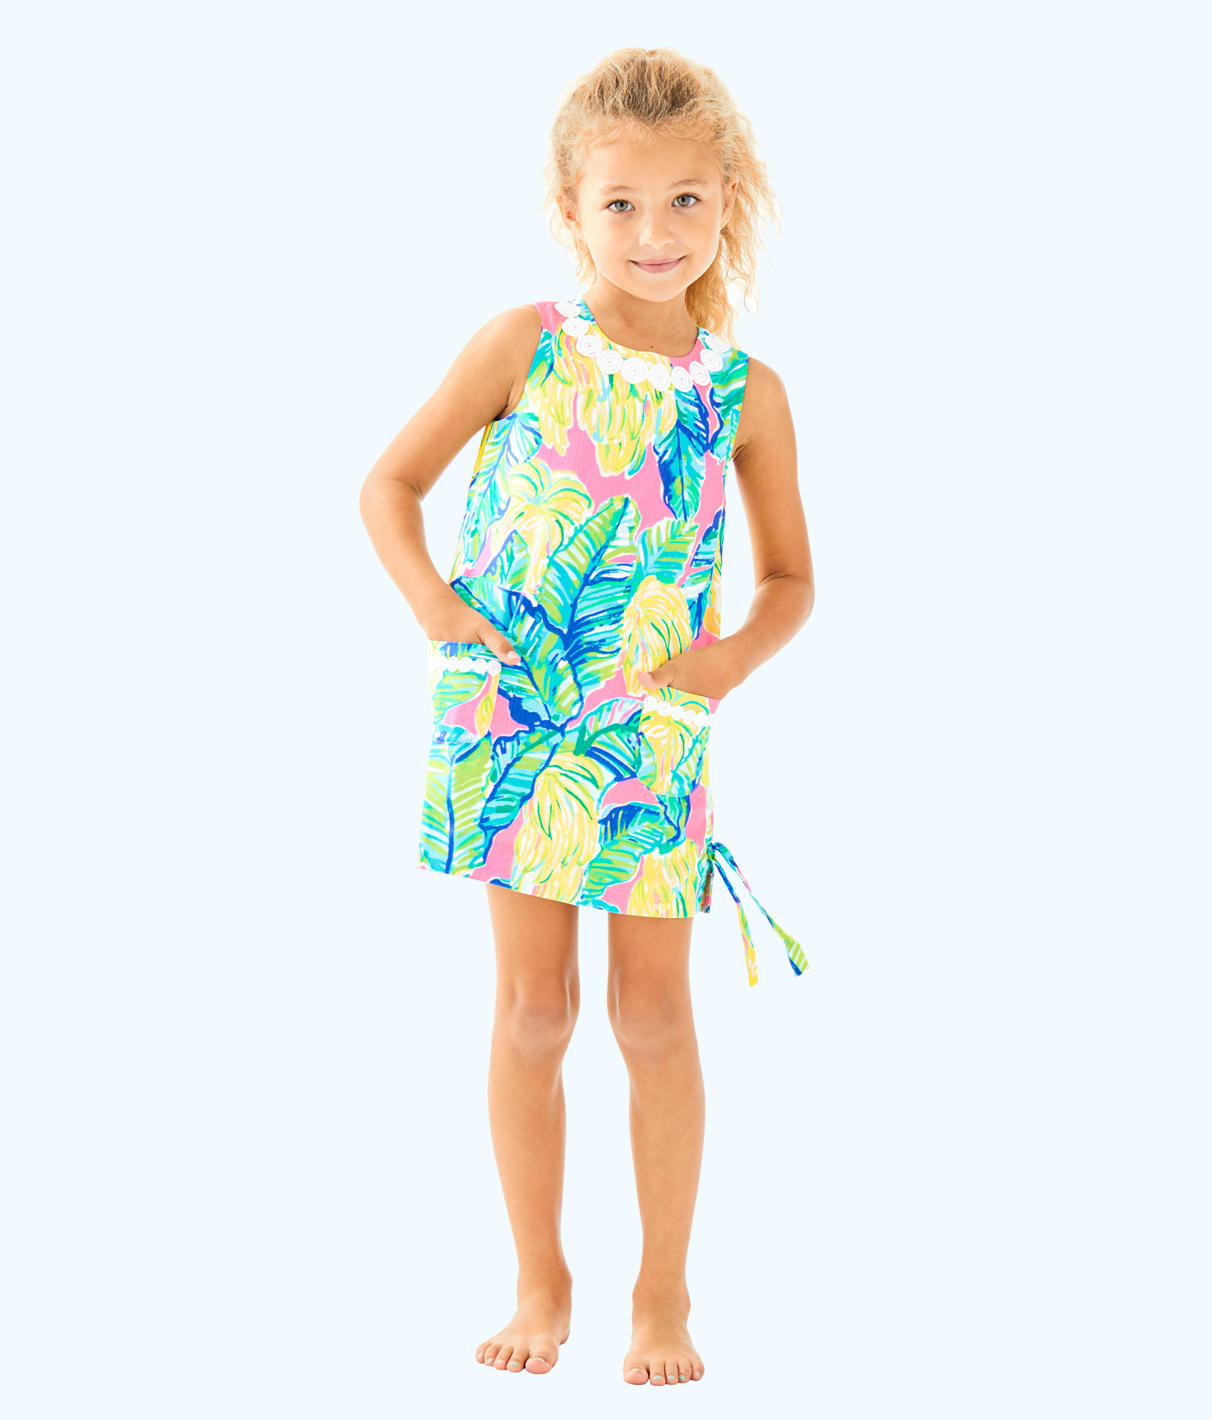 Lilly Pulitzer Lilly Pulitzer Girls Little Lilly Classic Shift